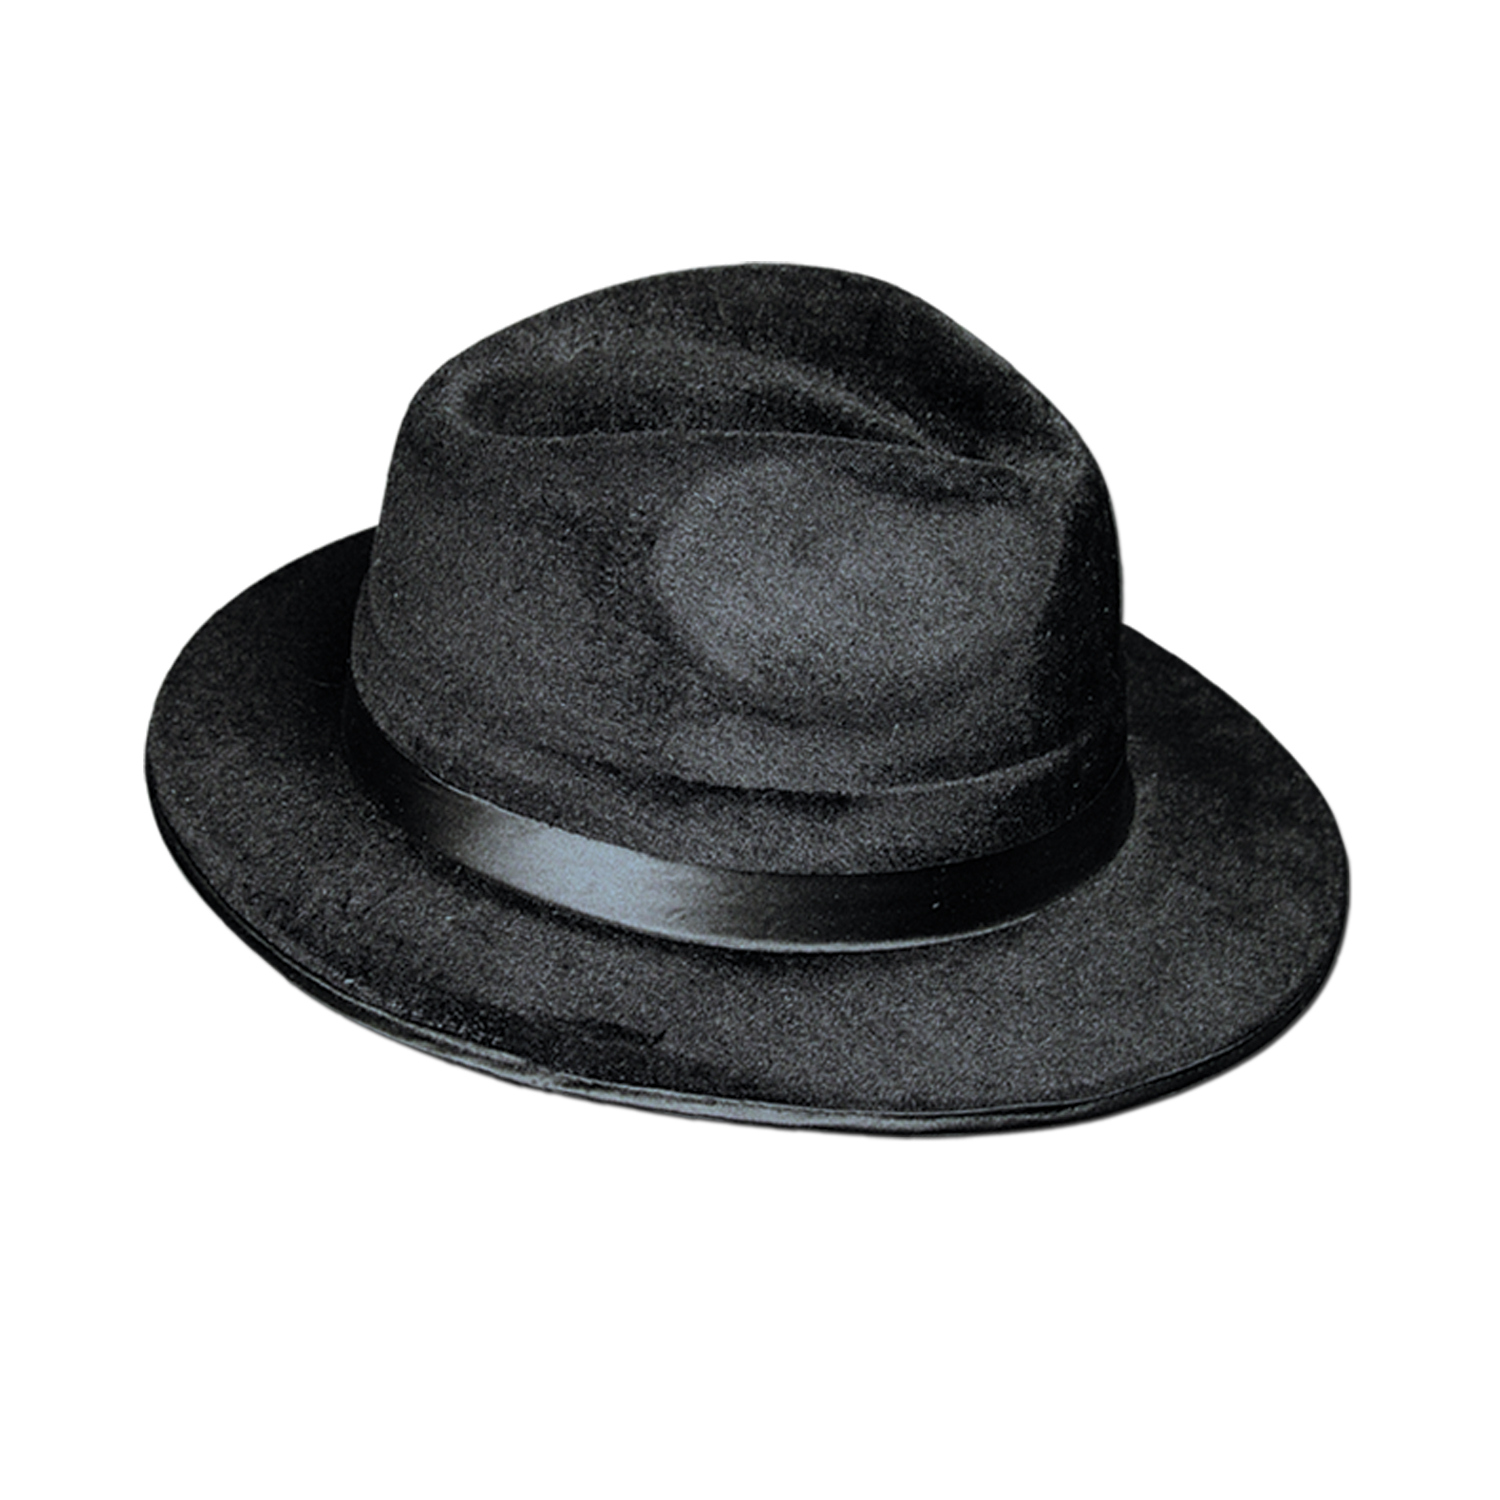 Plastic molded black fedora with a velour coating and a silk like band.